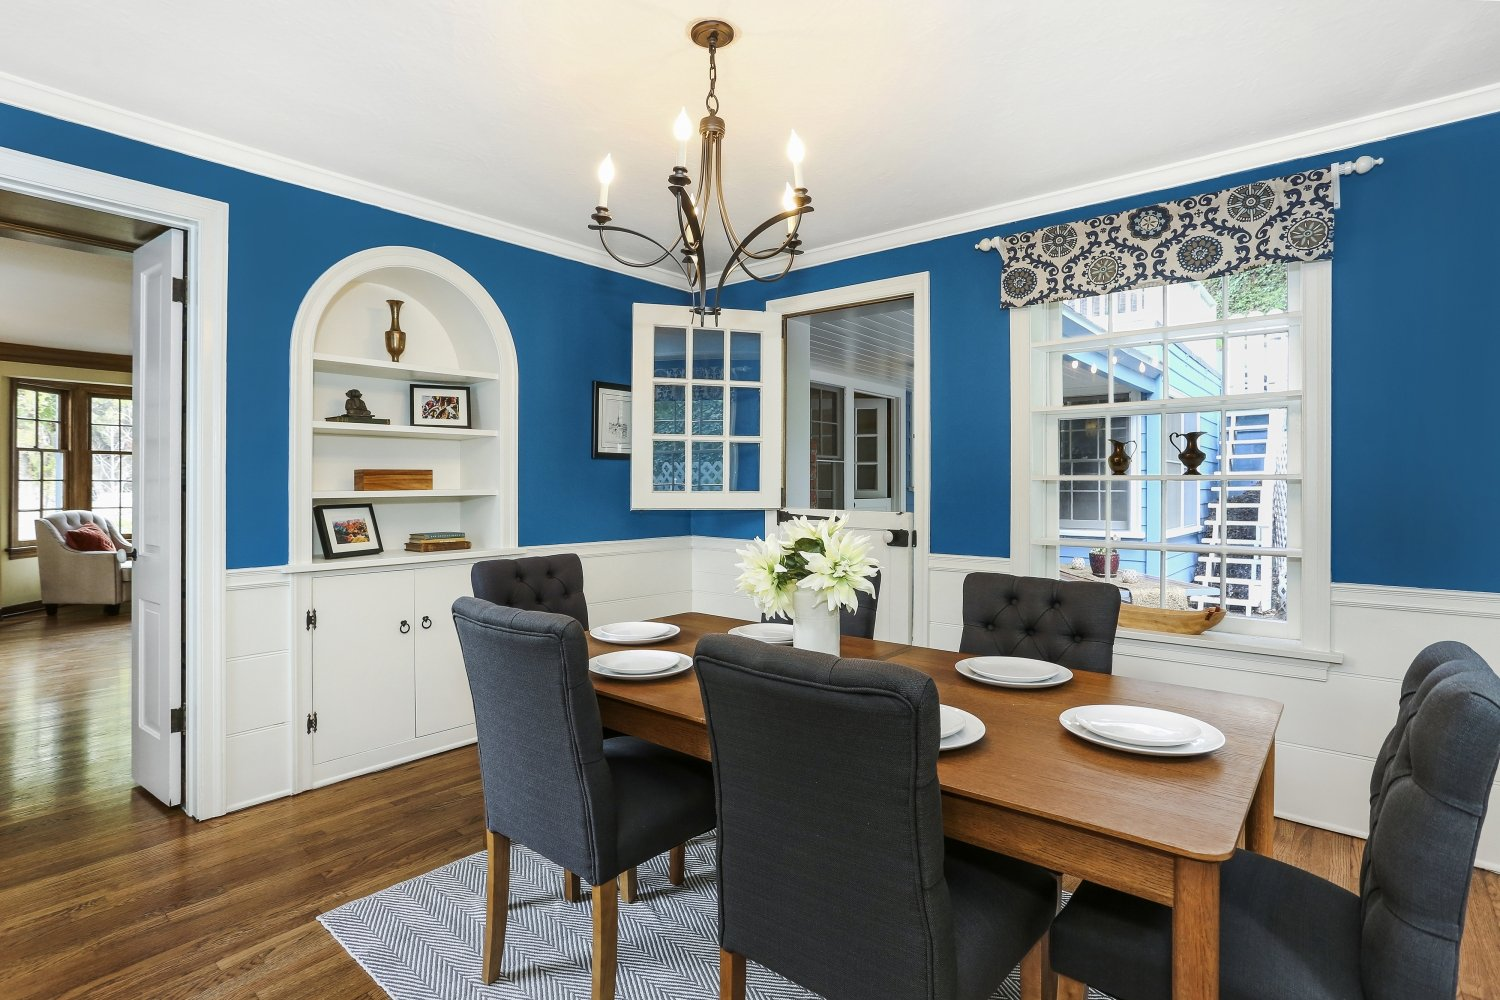 Pennsylvania Dutch Cottage Gerard Colford for sale in Glendale CA view of Dining Room